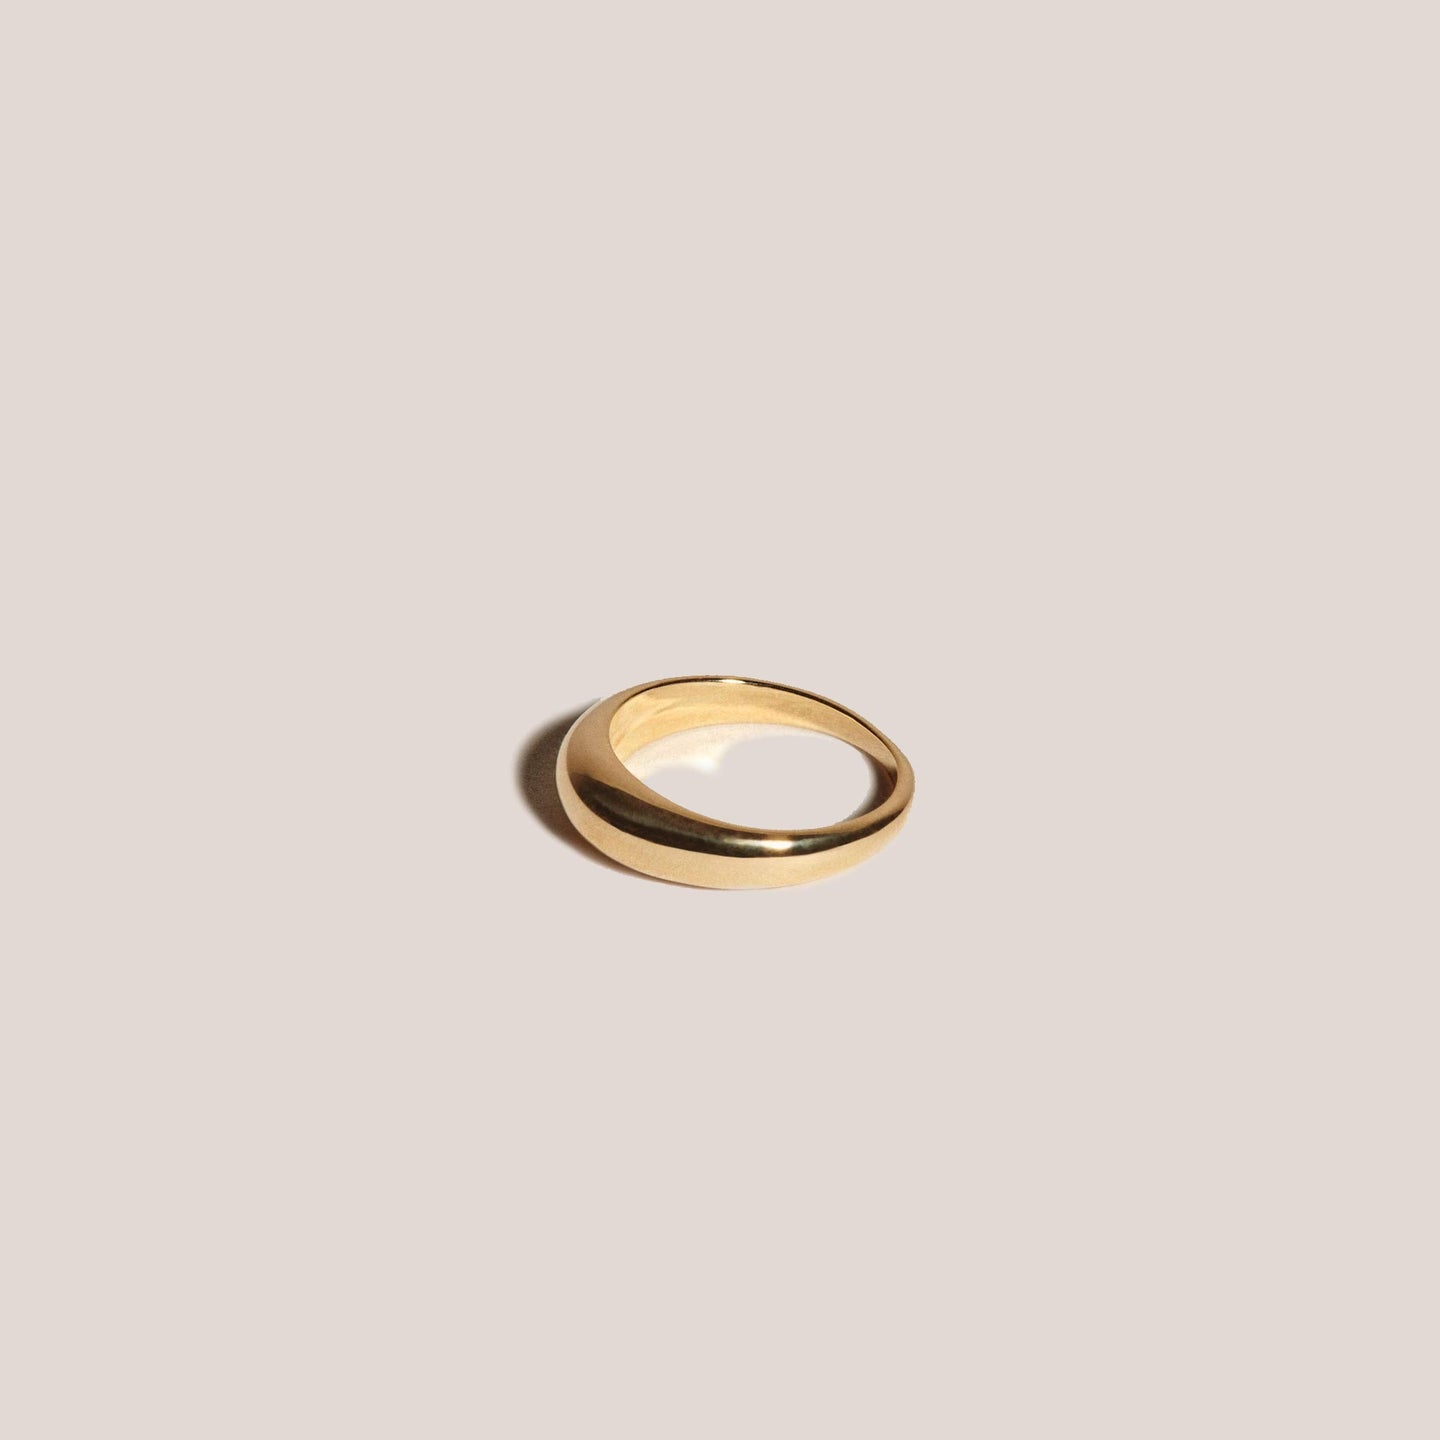 J. Hannah Jewelry - Form Ring I - 14K Yellow Gold, available at LCD.